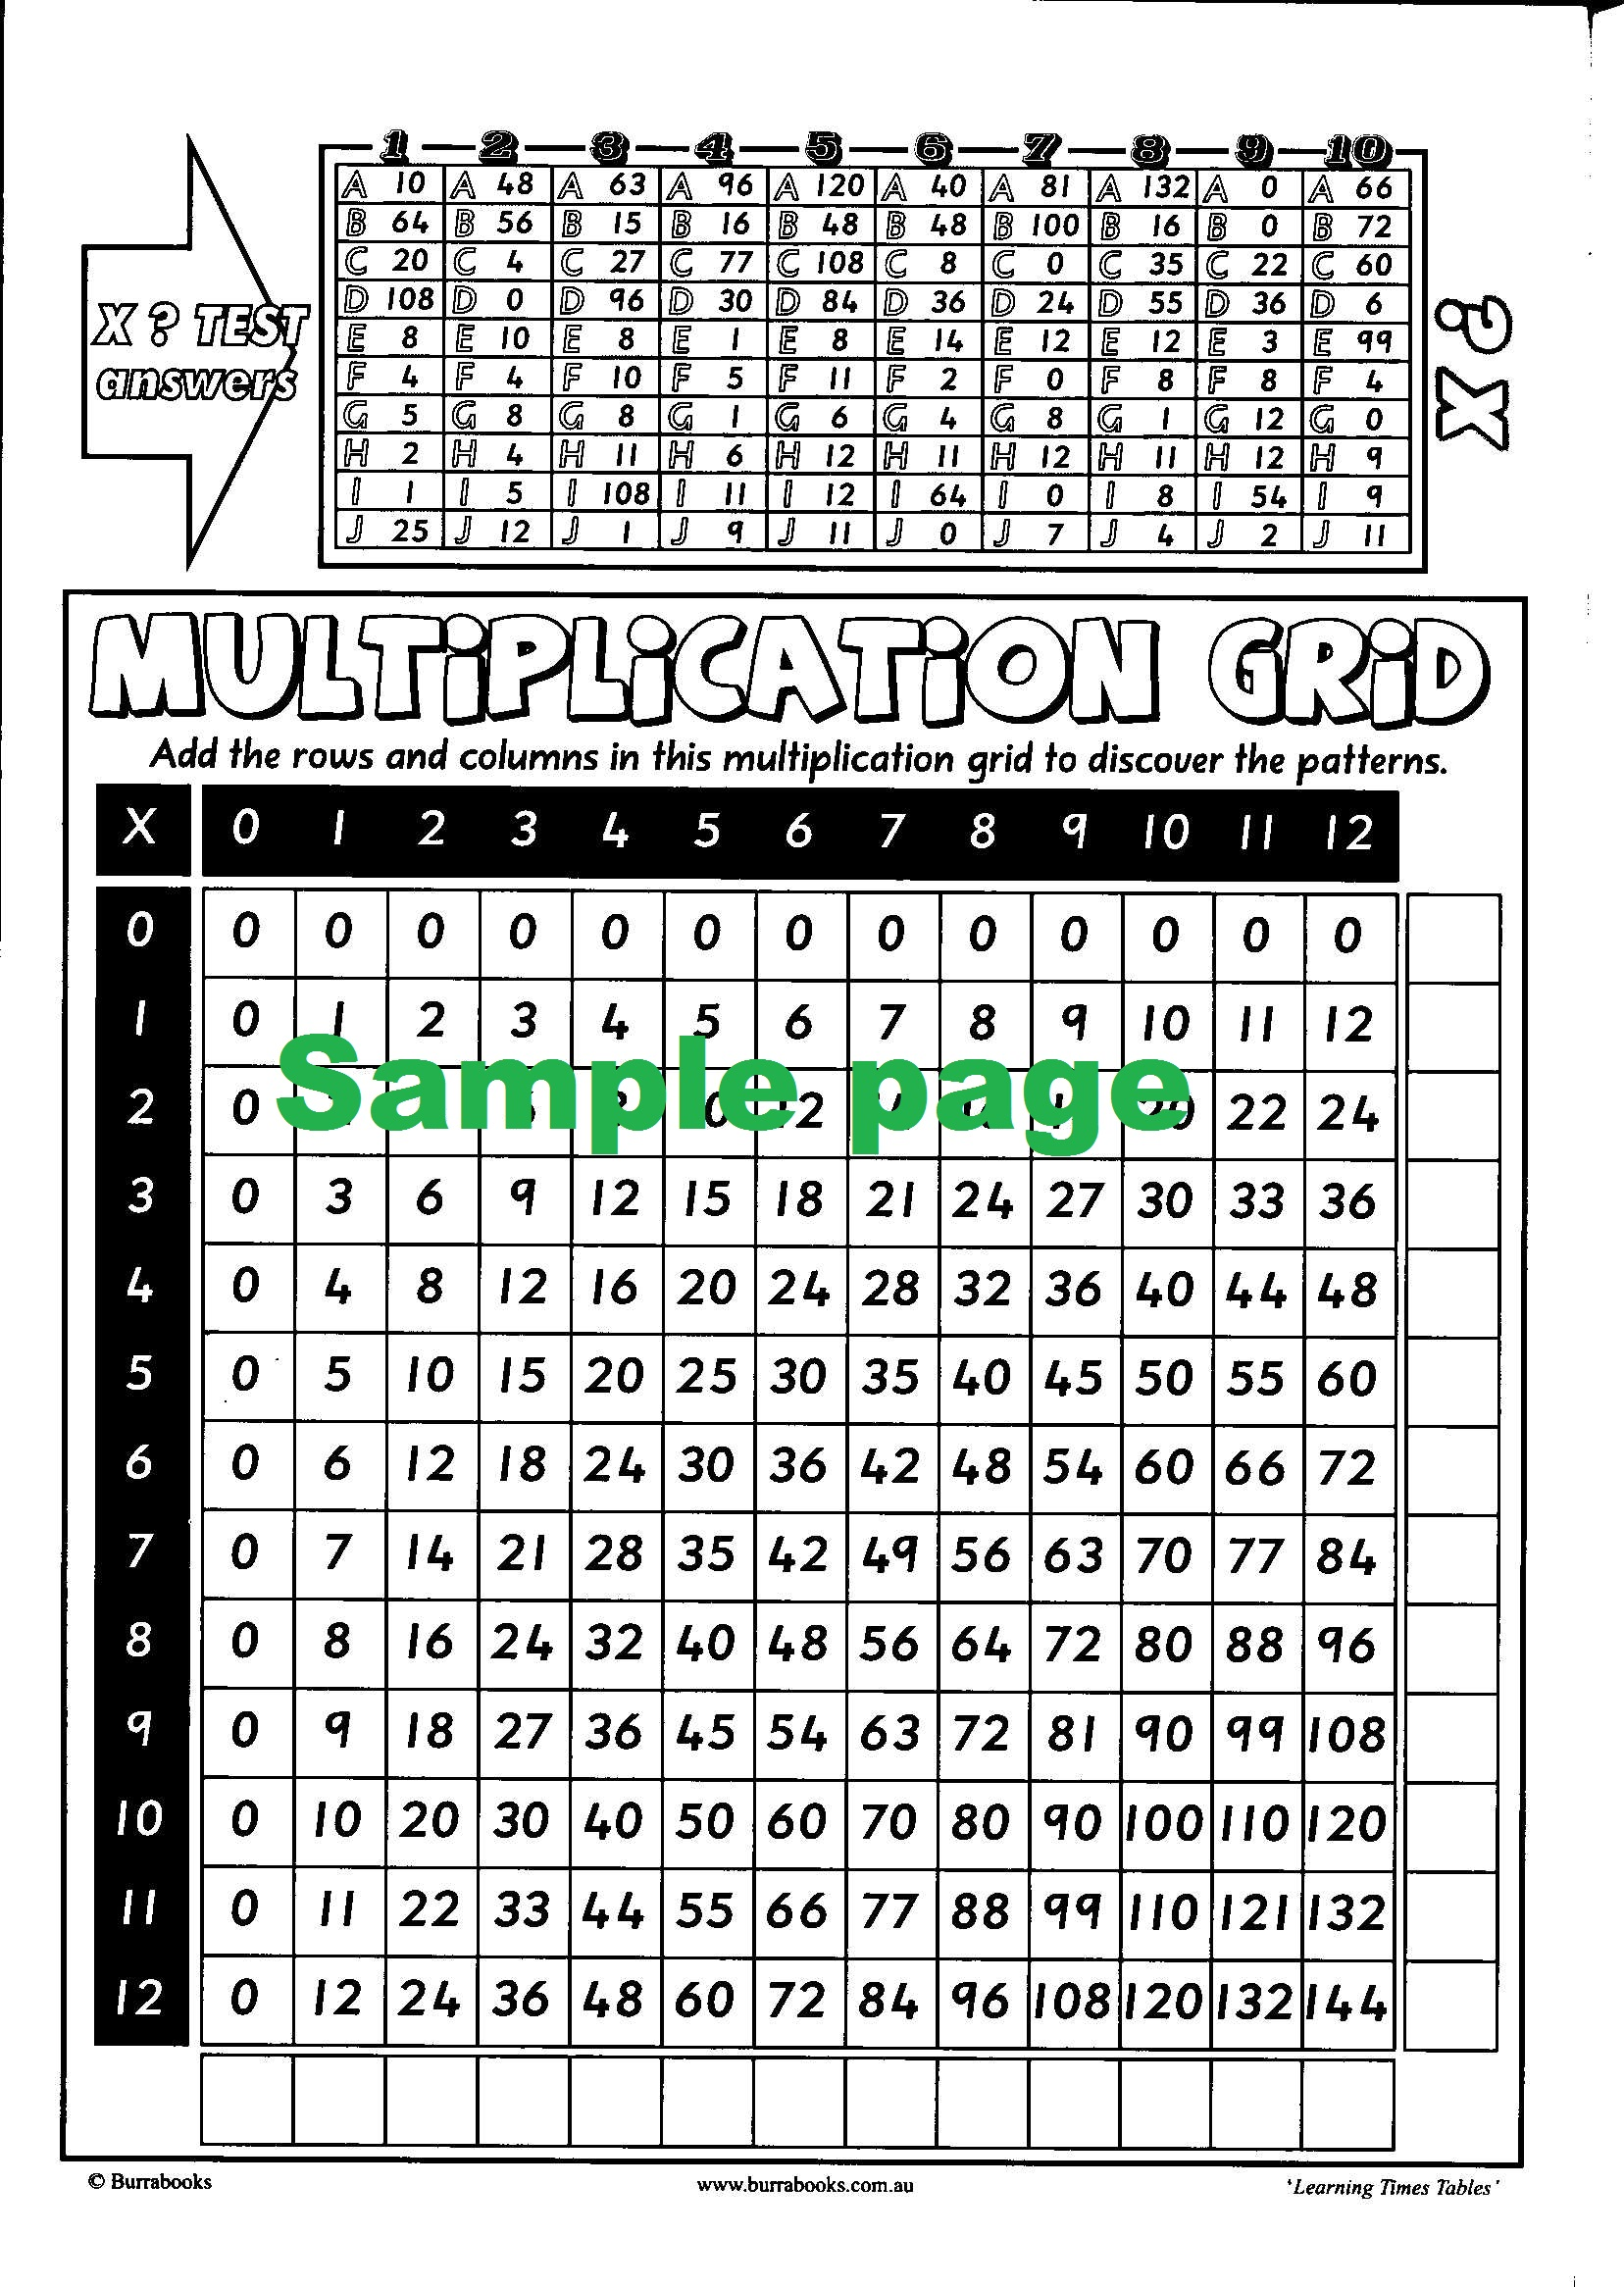 Learning Times Tables-41973